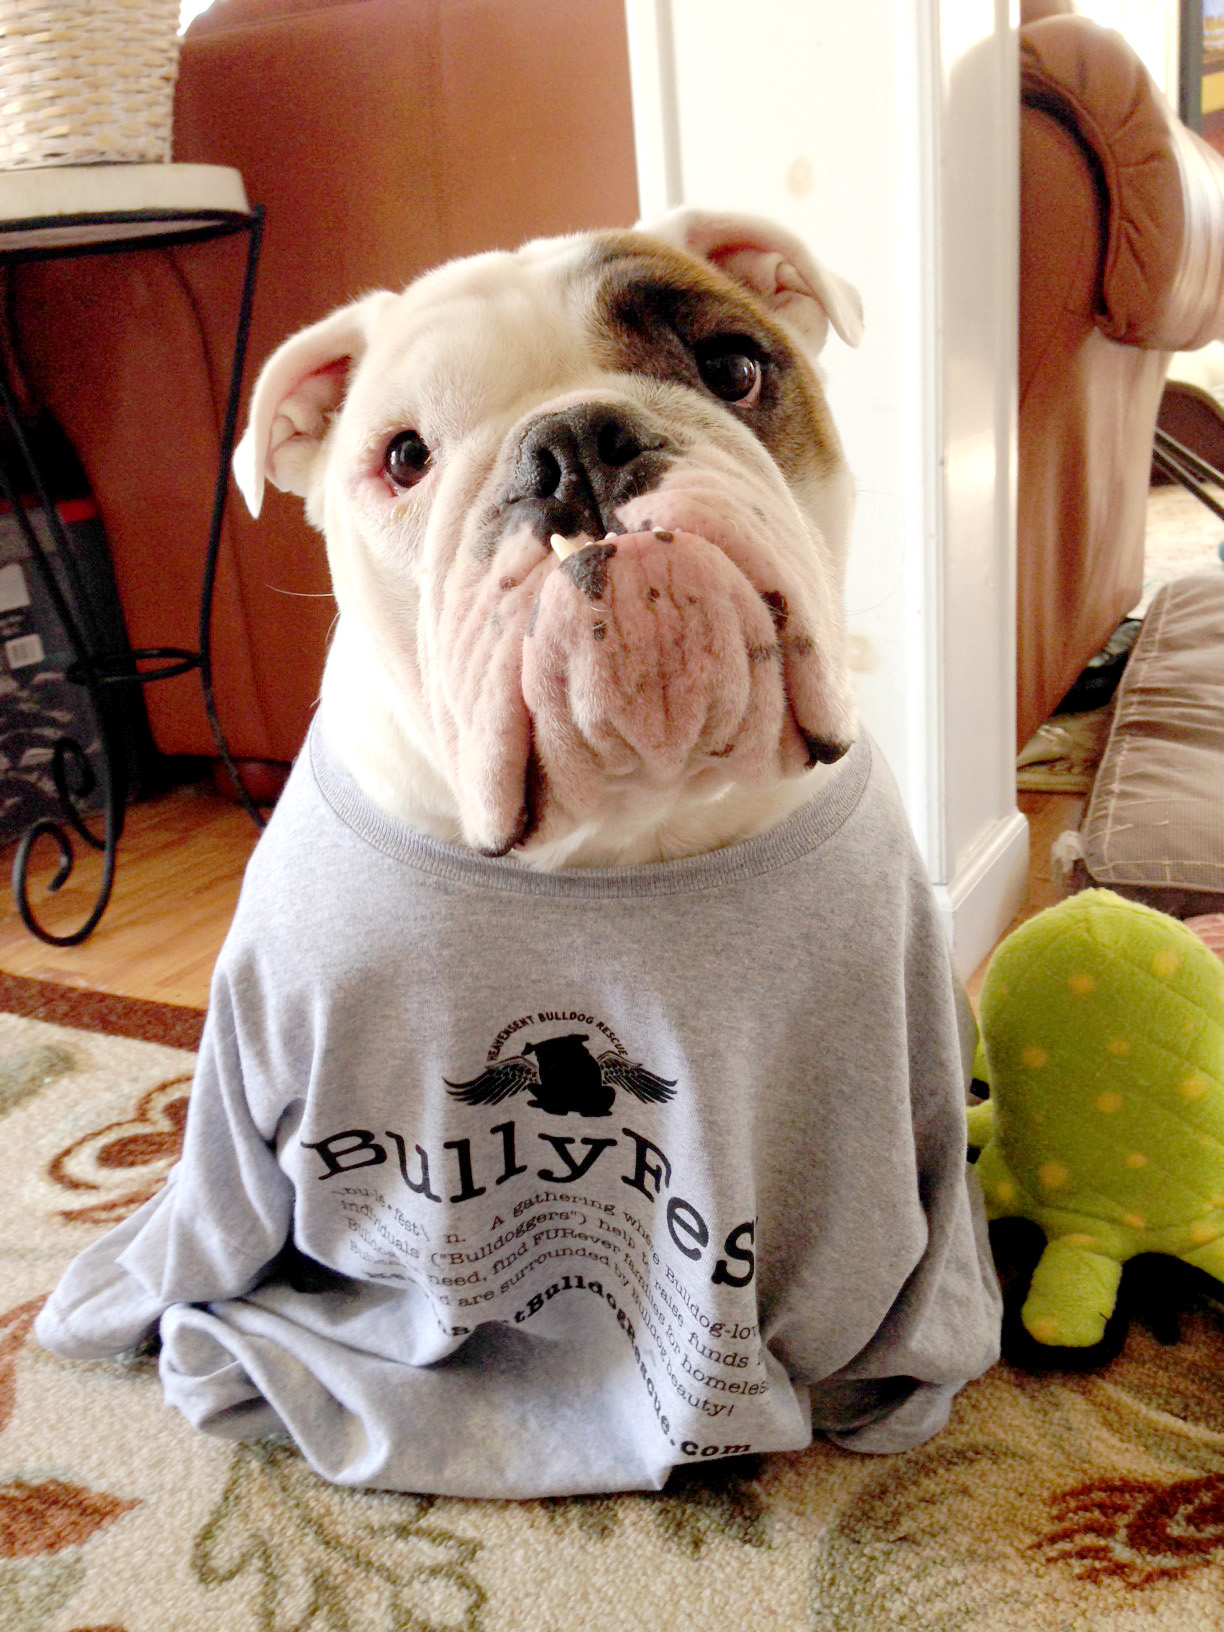 Design your own t-shirt for dogs - Bulldogs Love Custom Ink T Shirt Photo